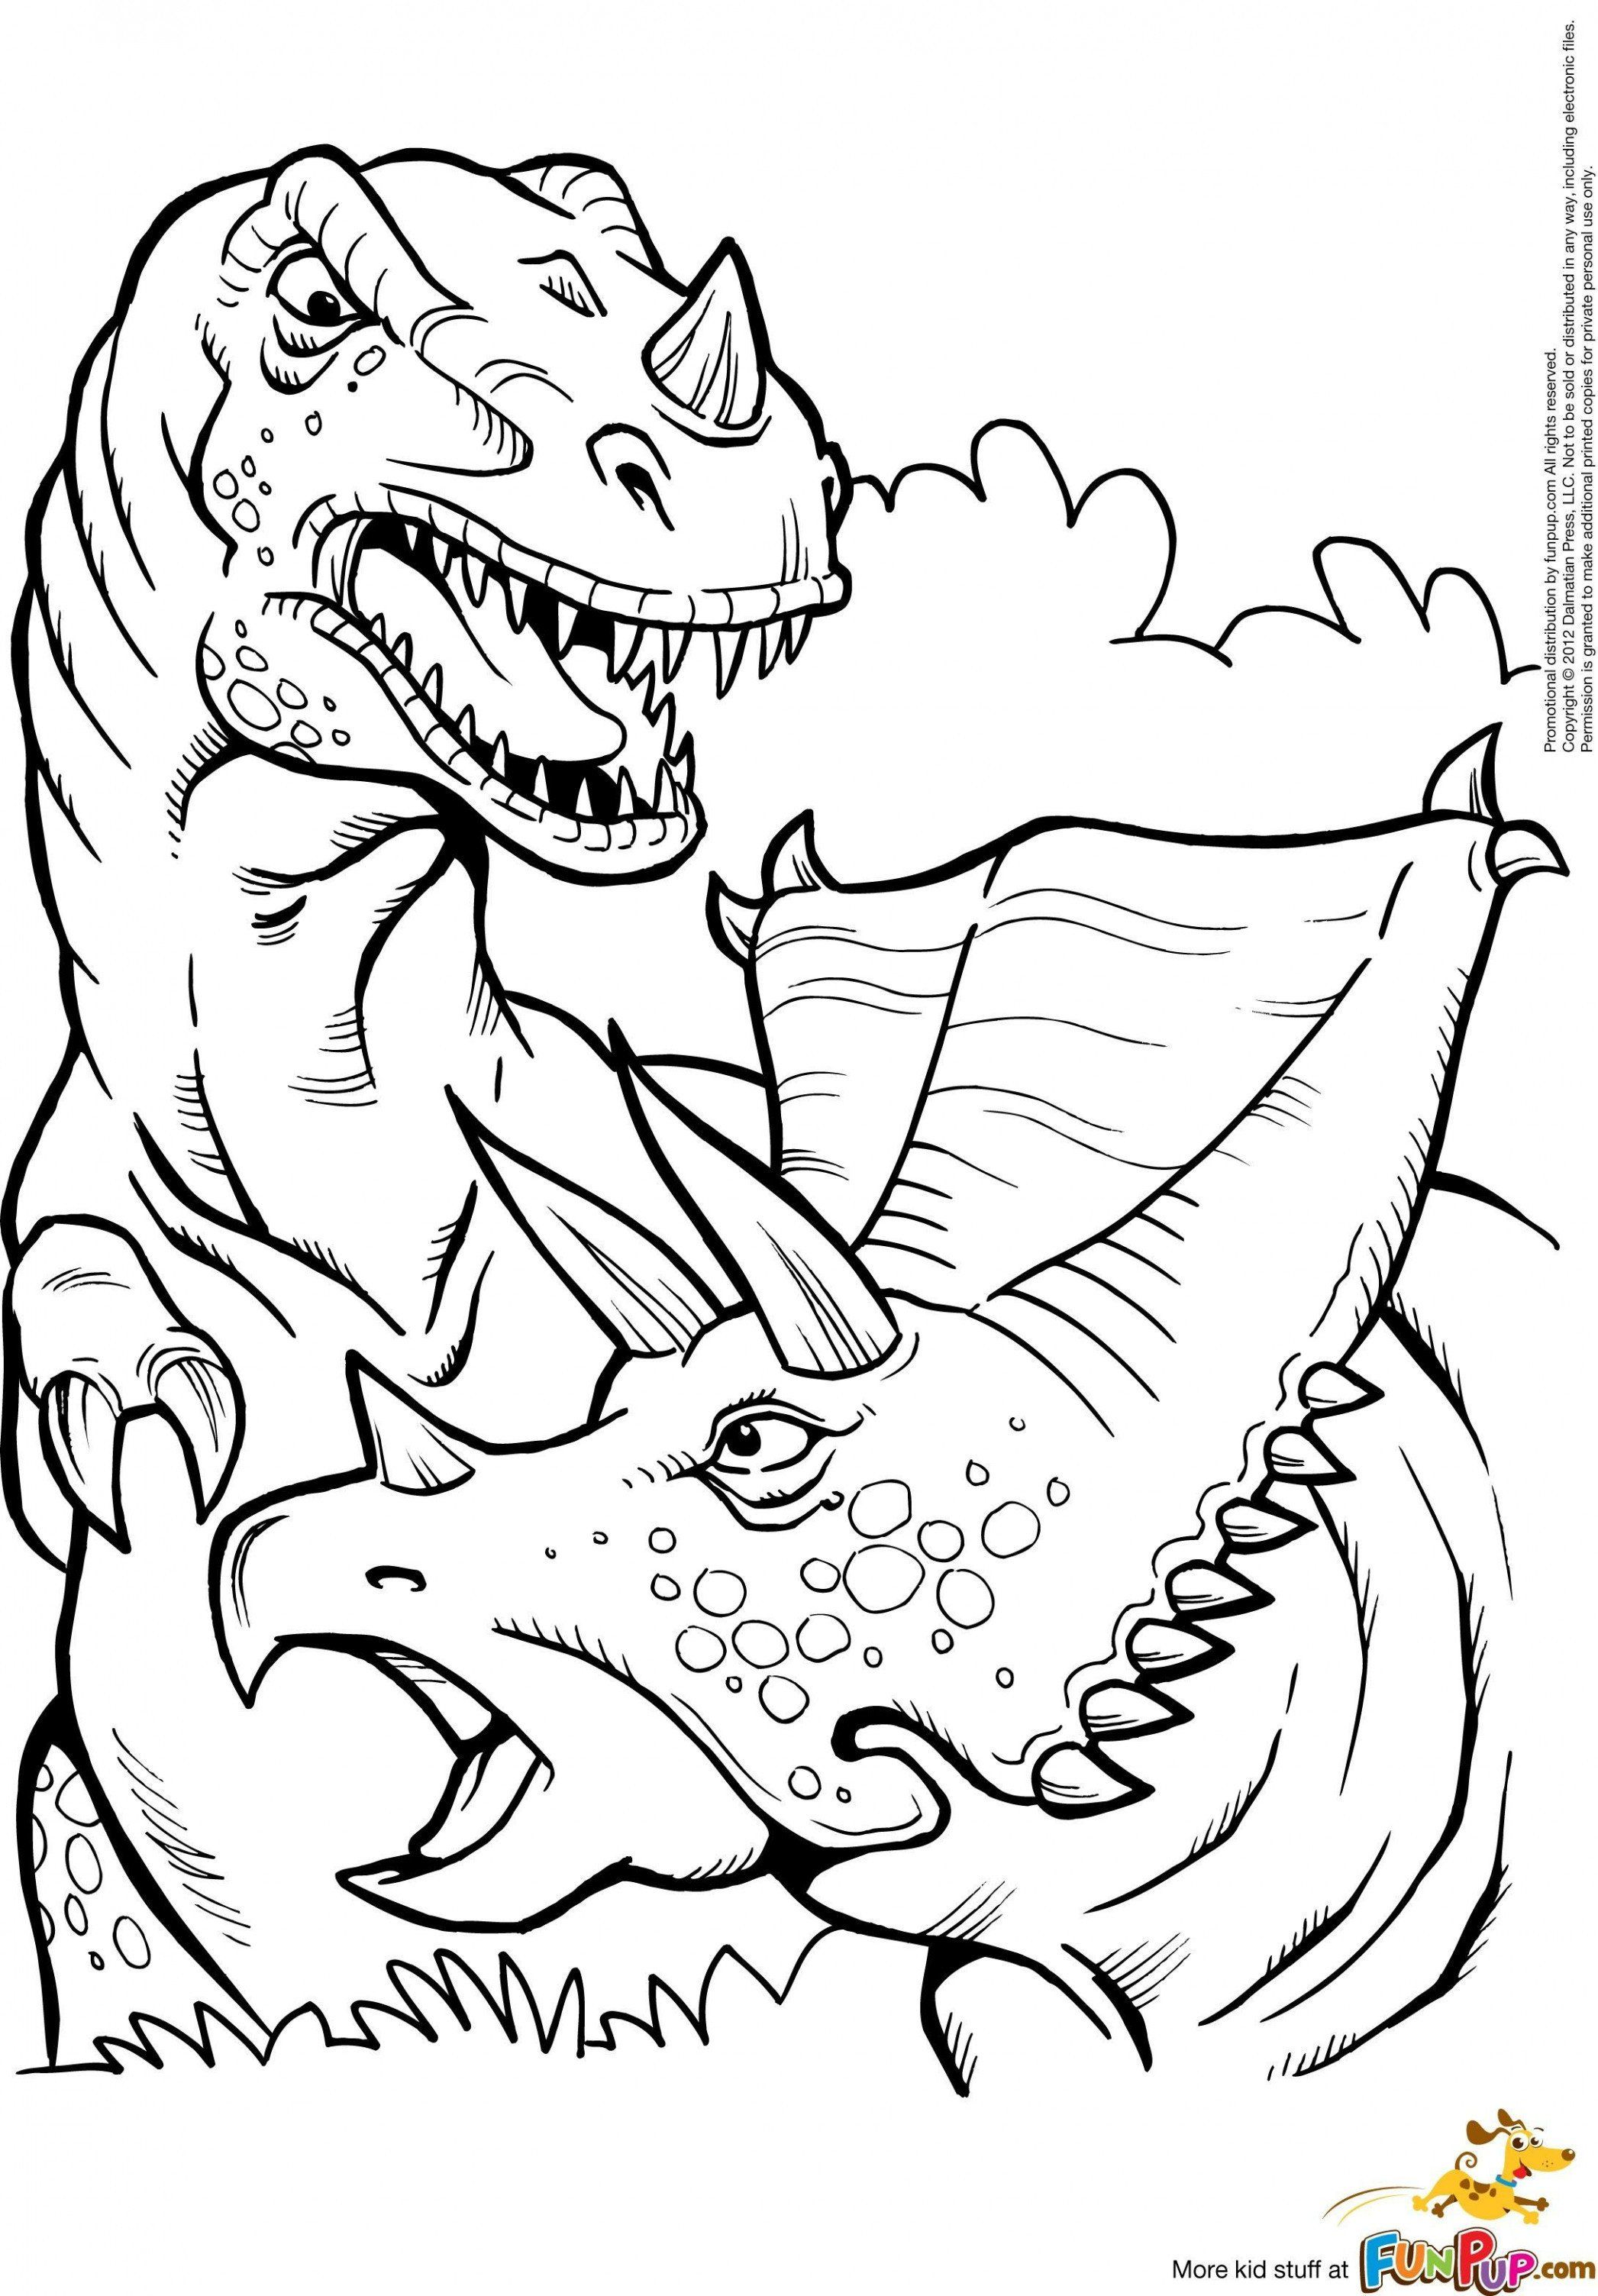 T Rex Coloring Pages New T Rex Coloring Page Dinosaur Coloring Pages Dinosaur Coloring Sheets Dinosaur Coloring